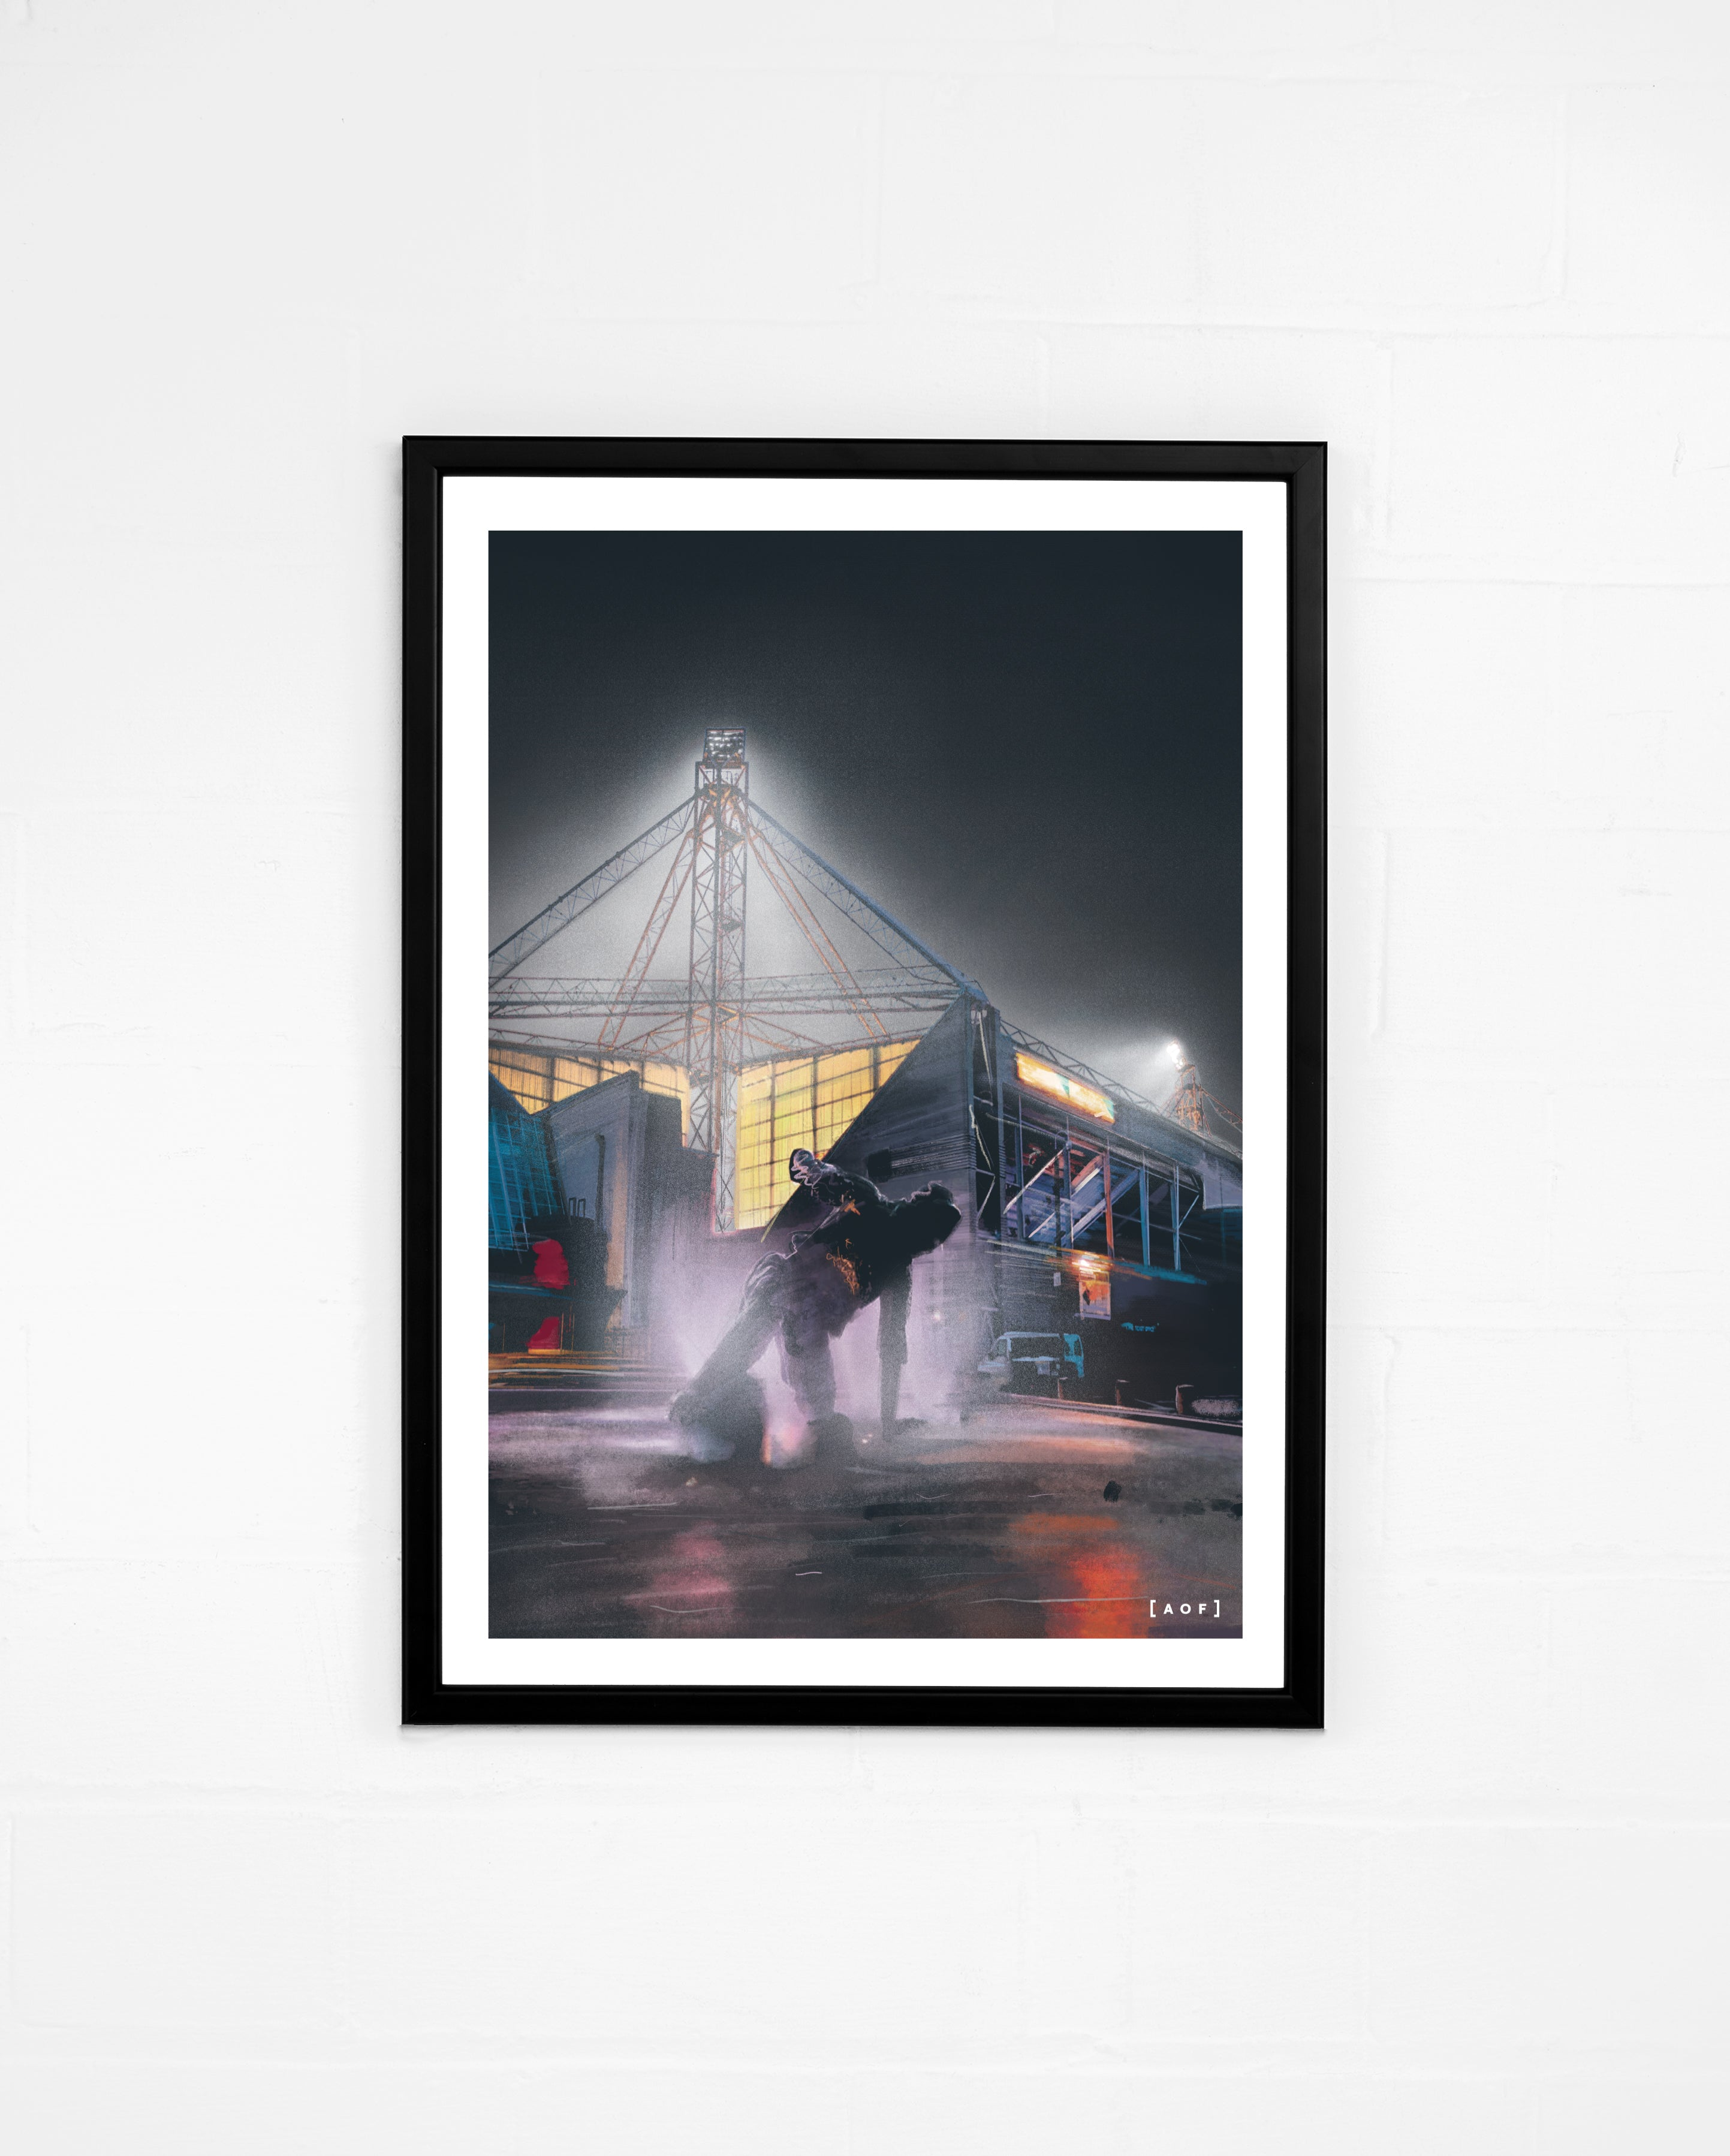 Deepdale by Night - Print or Canvas